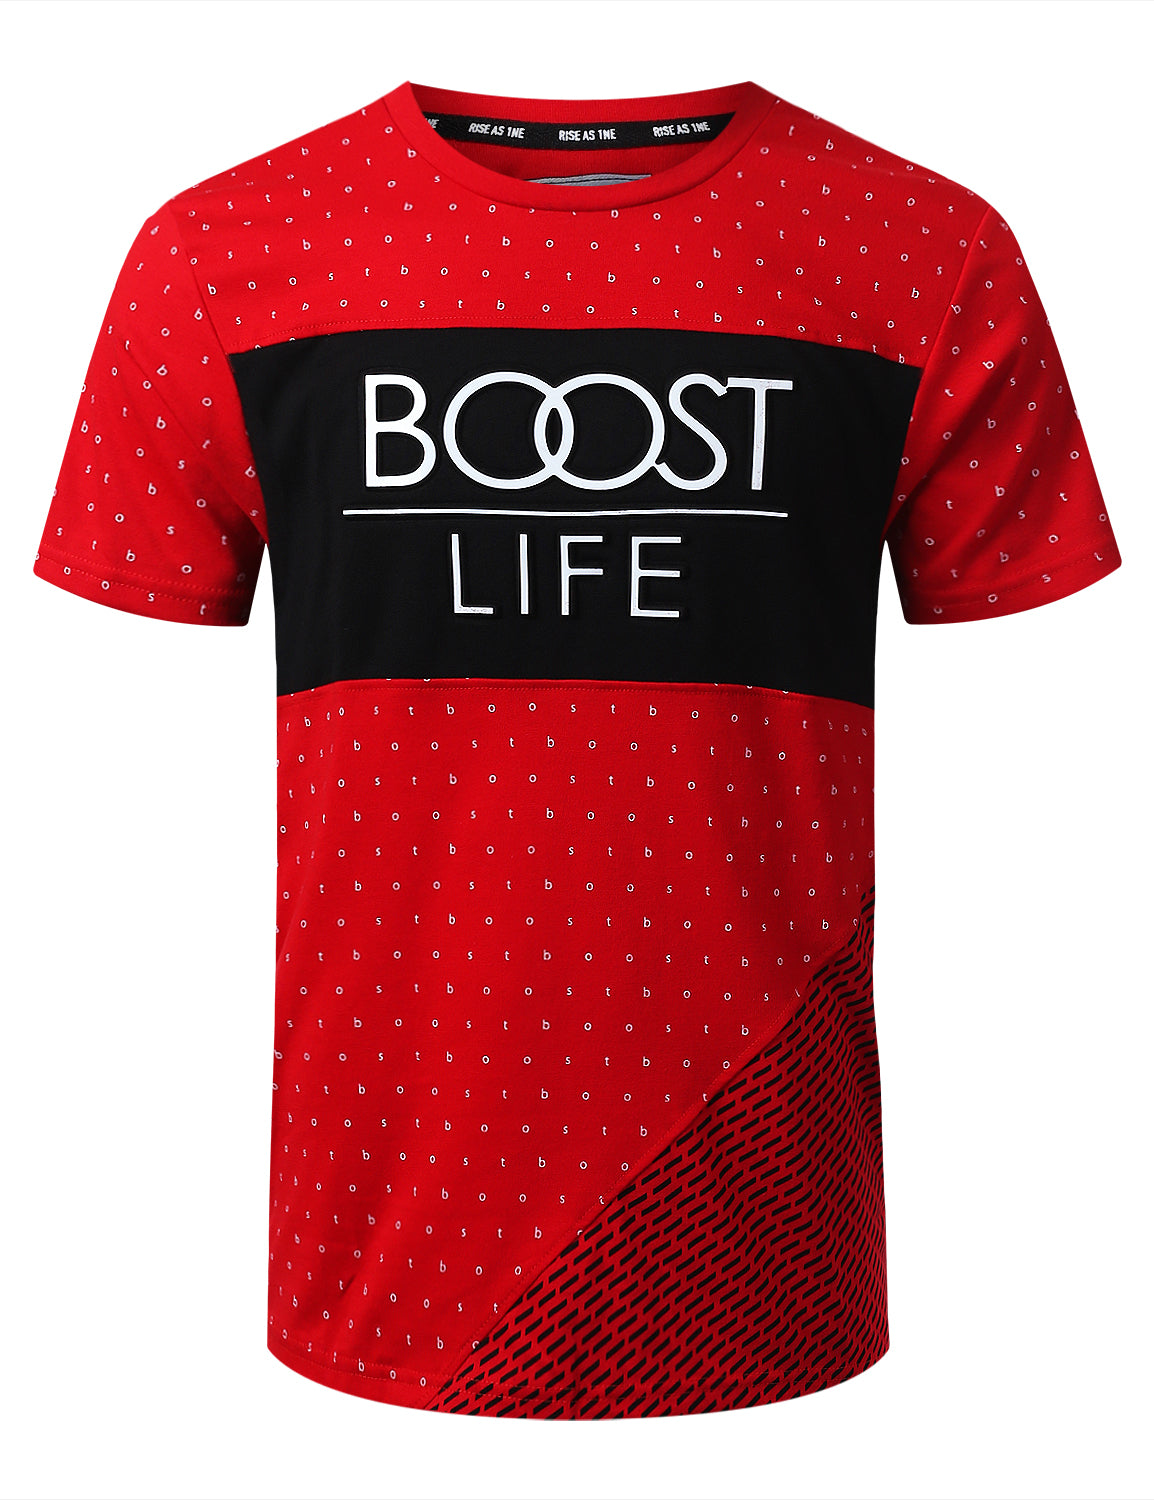 RED BOOST LIFE Pattern Print Graphic T-shirt - URBANCREWS